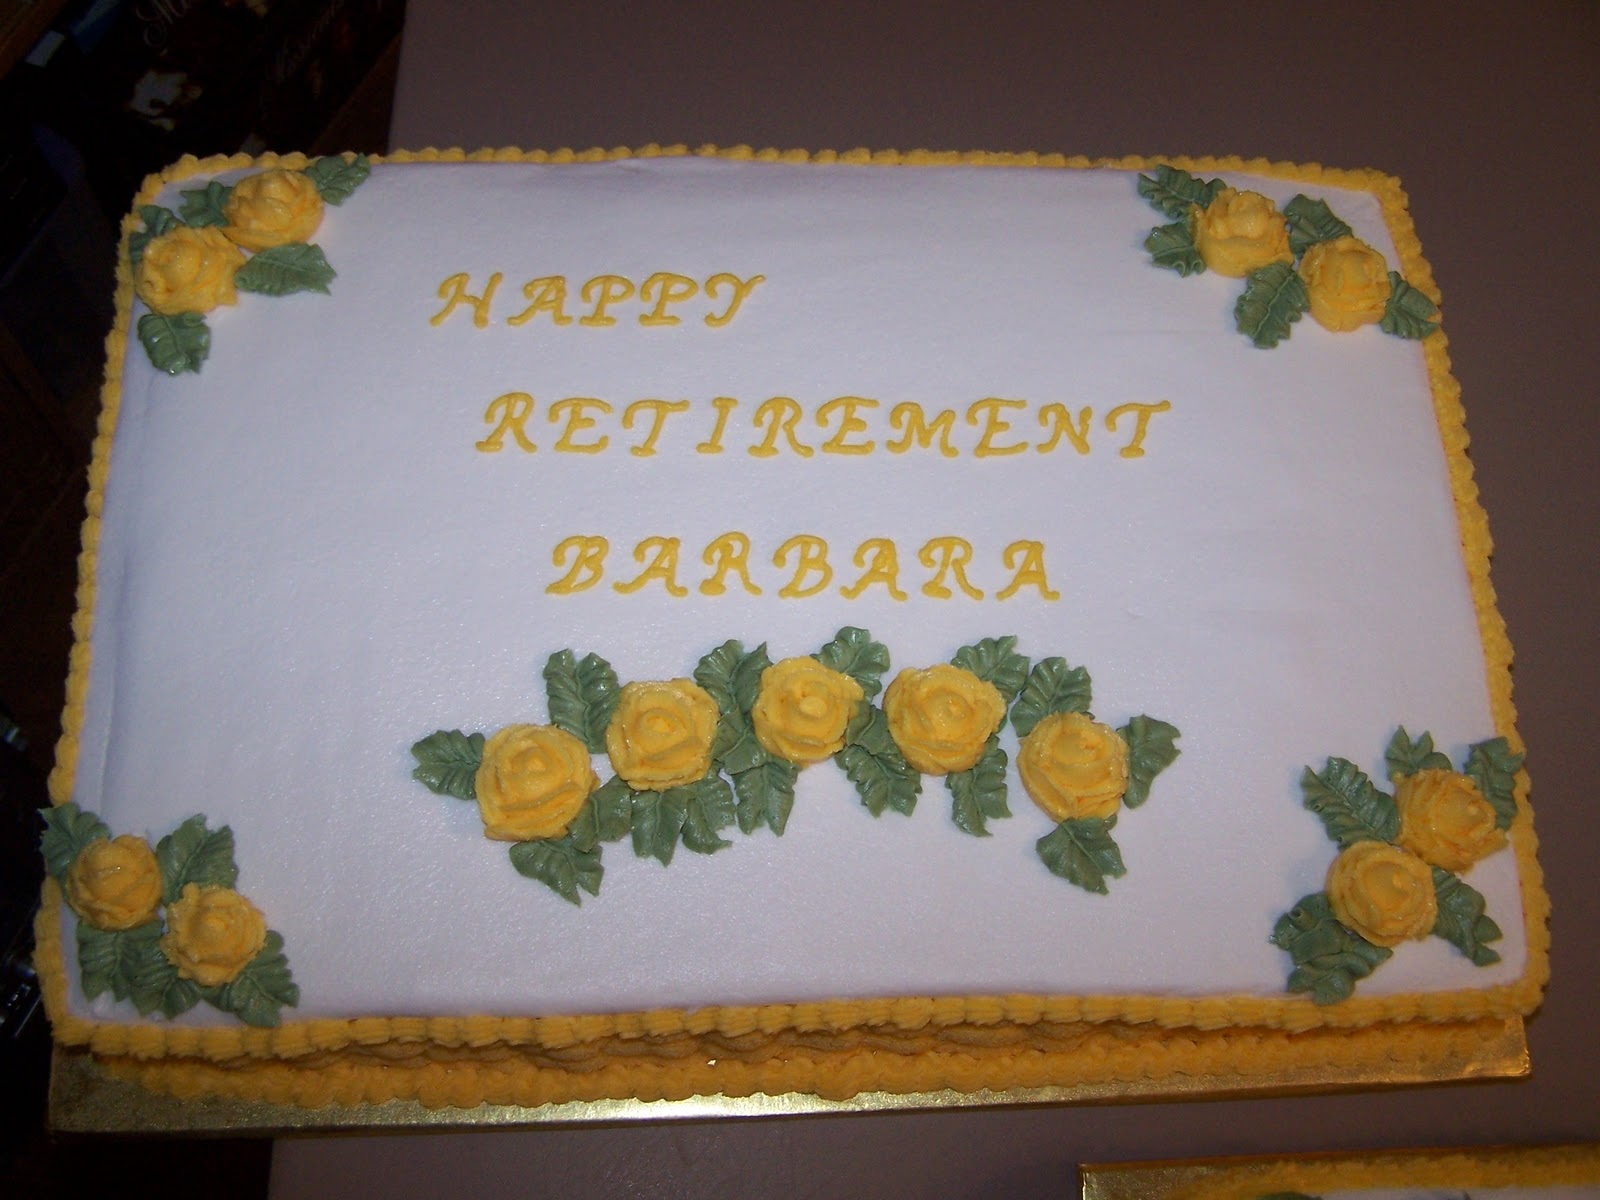 retirement cake images